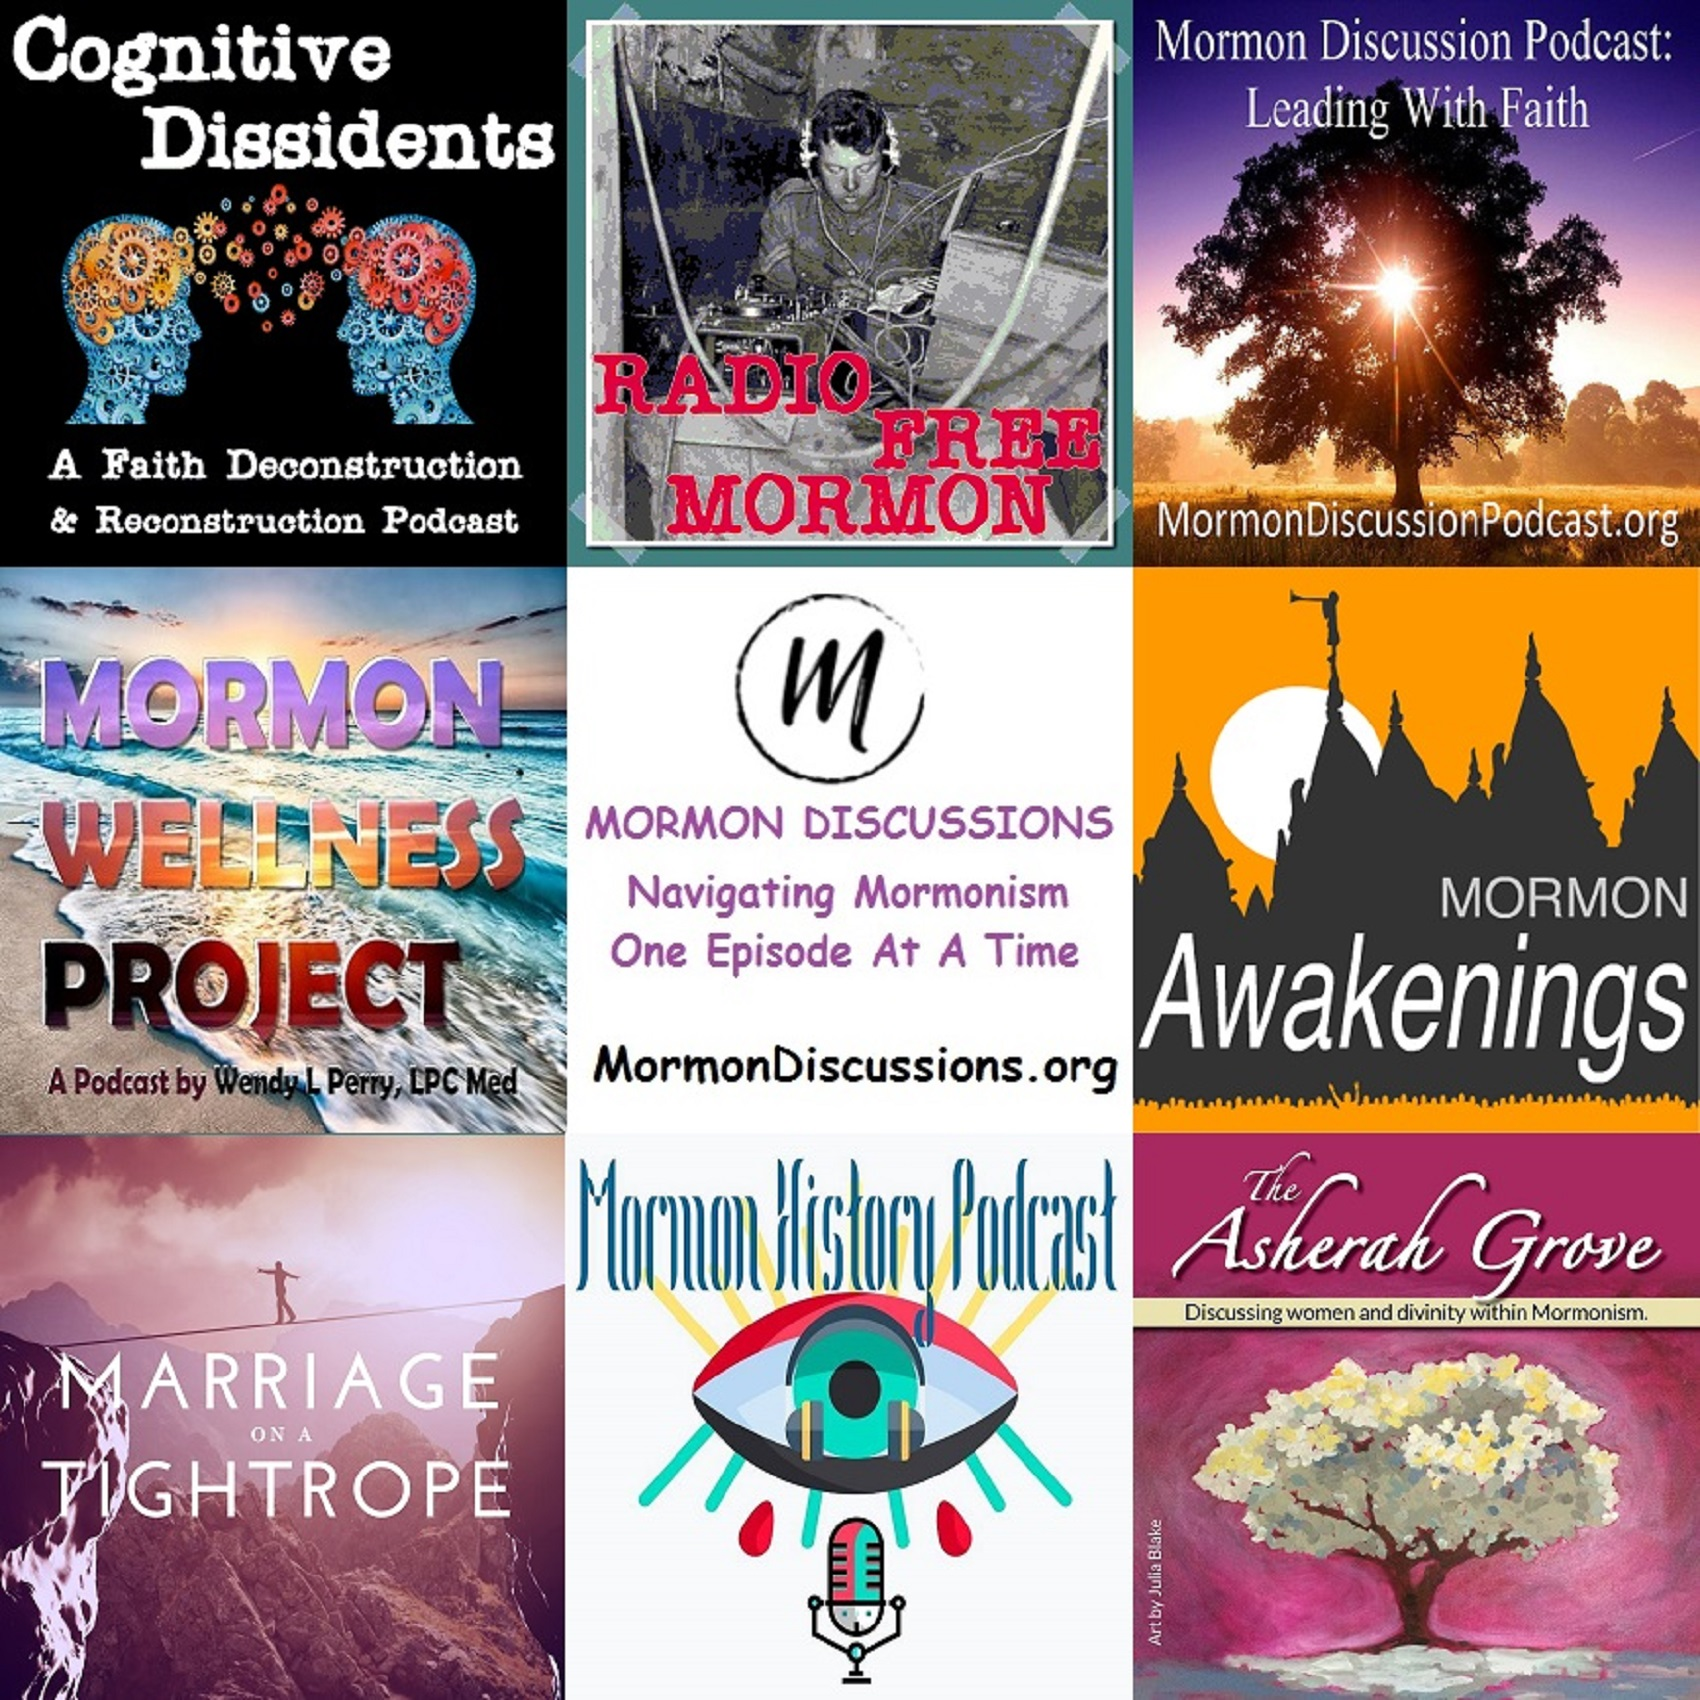 Mormon Discussions Podcasts - Full Lineup